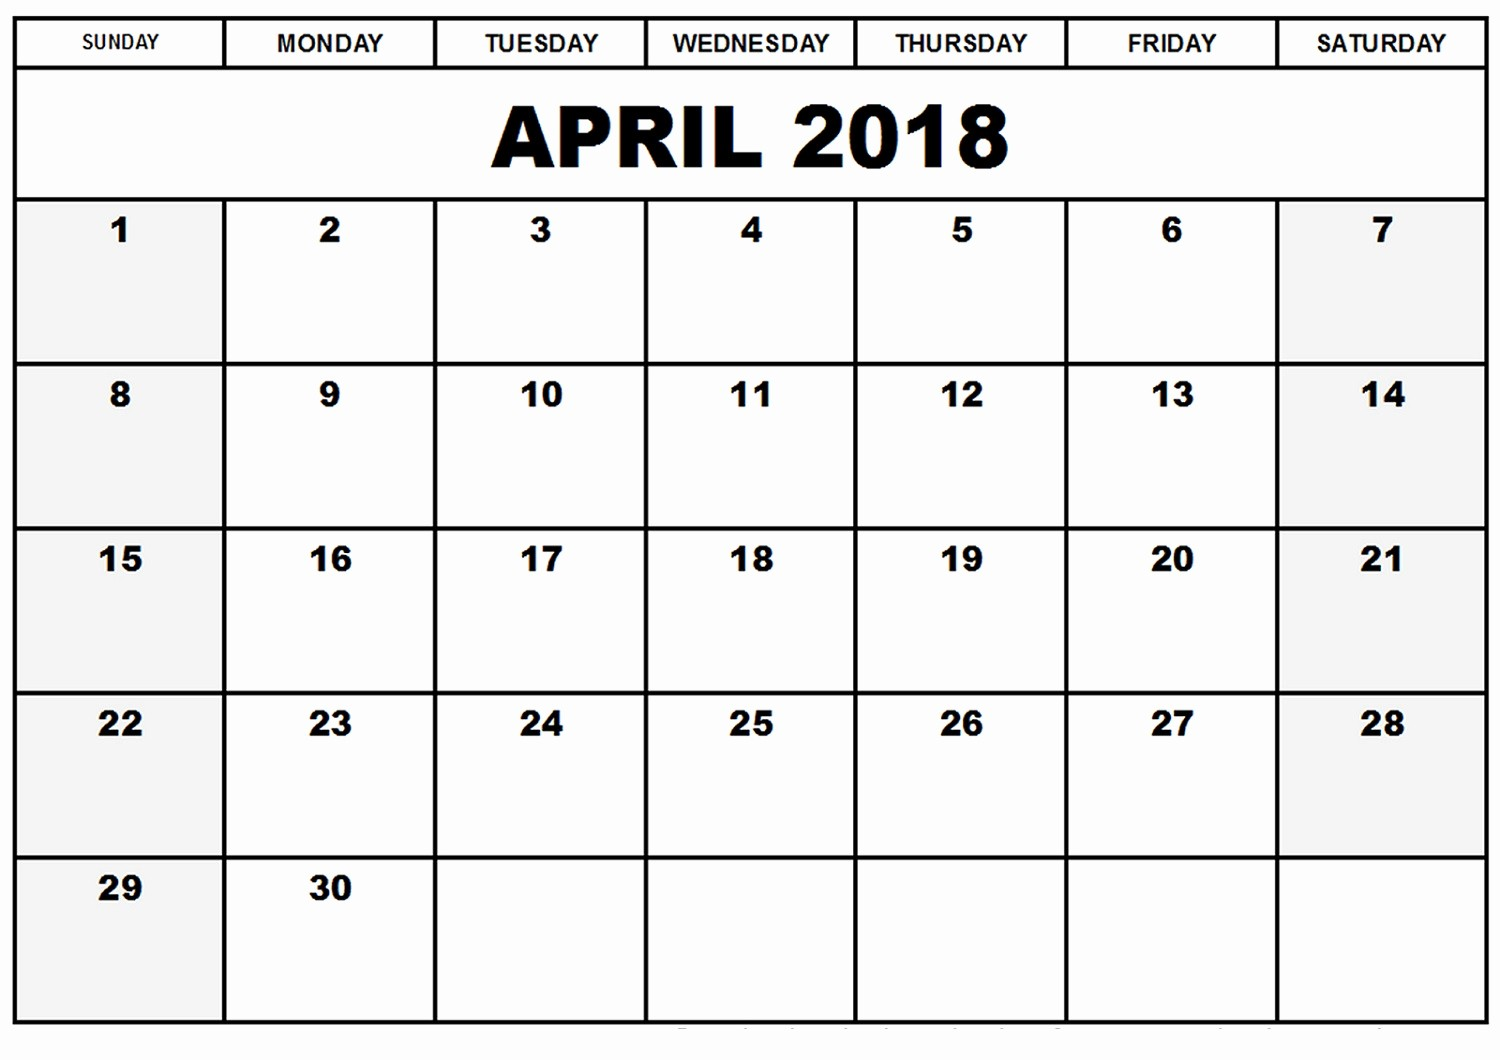 Blank April 2018 Calendar Template Lovely Printable Blank 2018 Monthly Calendar April – Printable